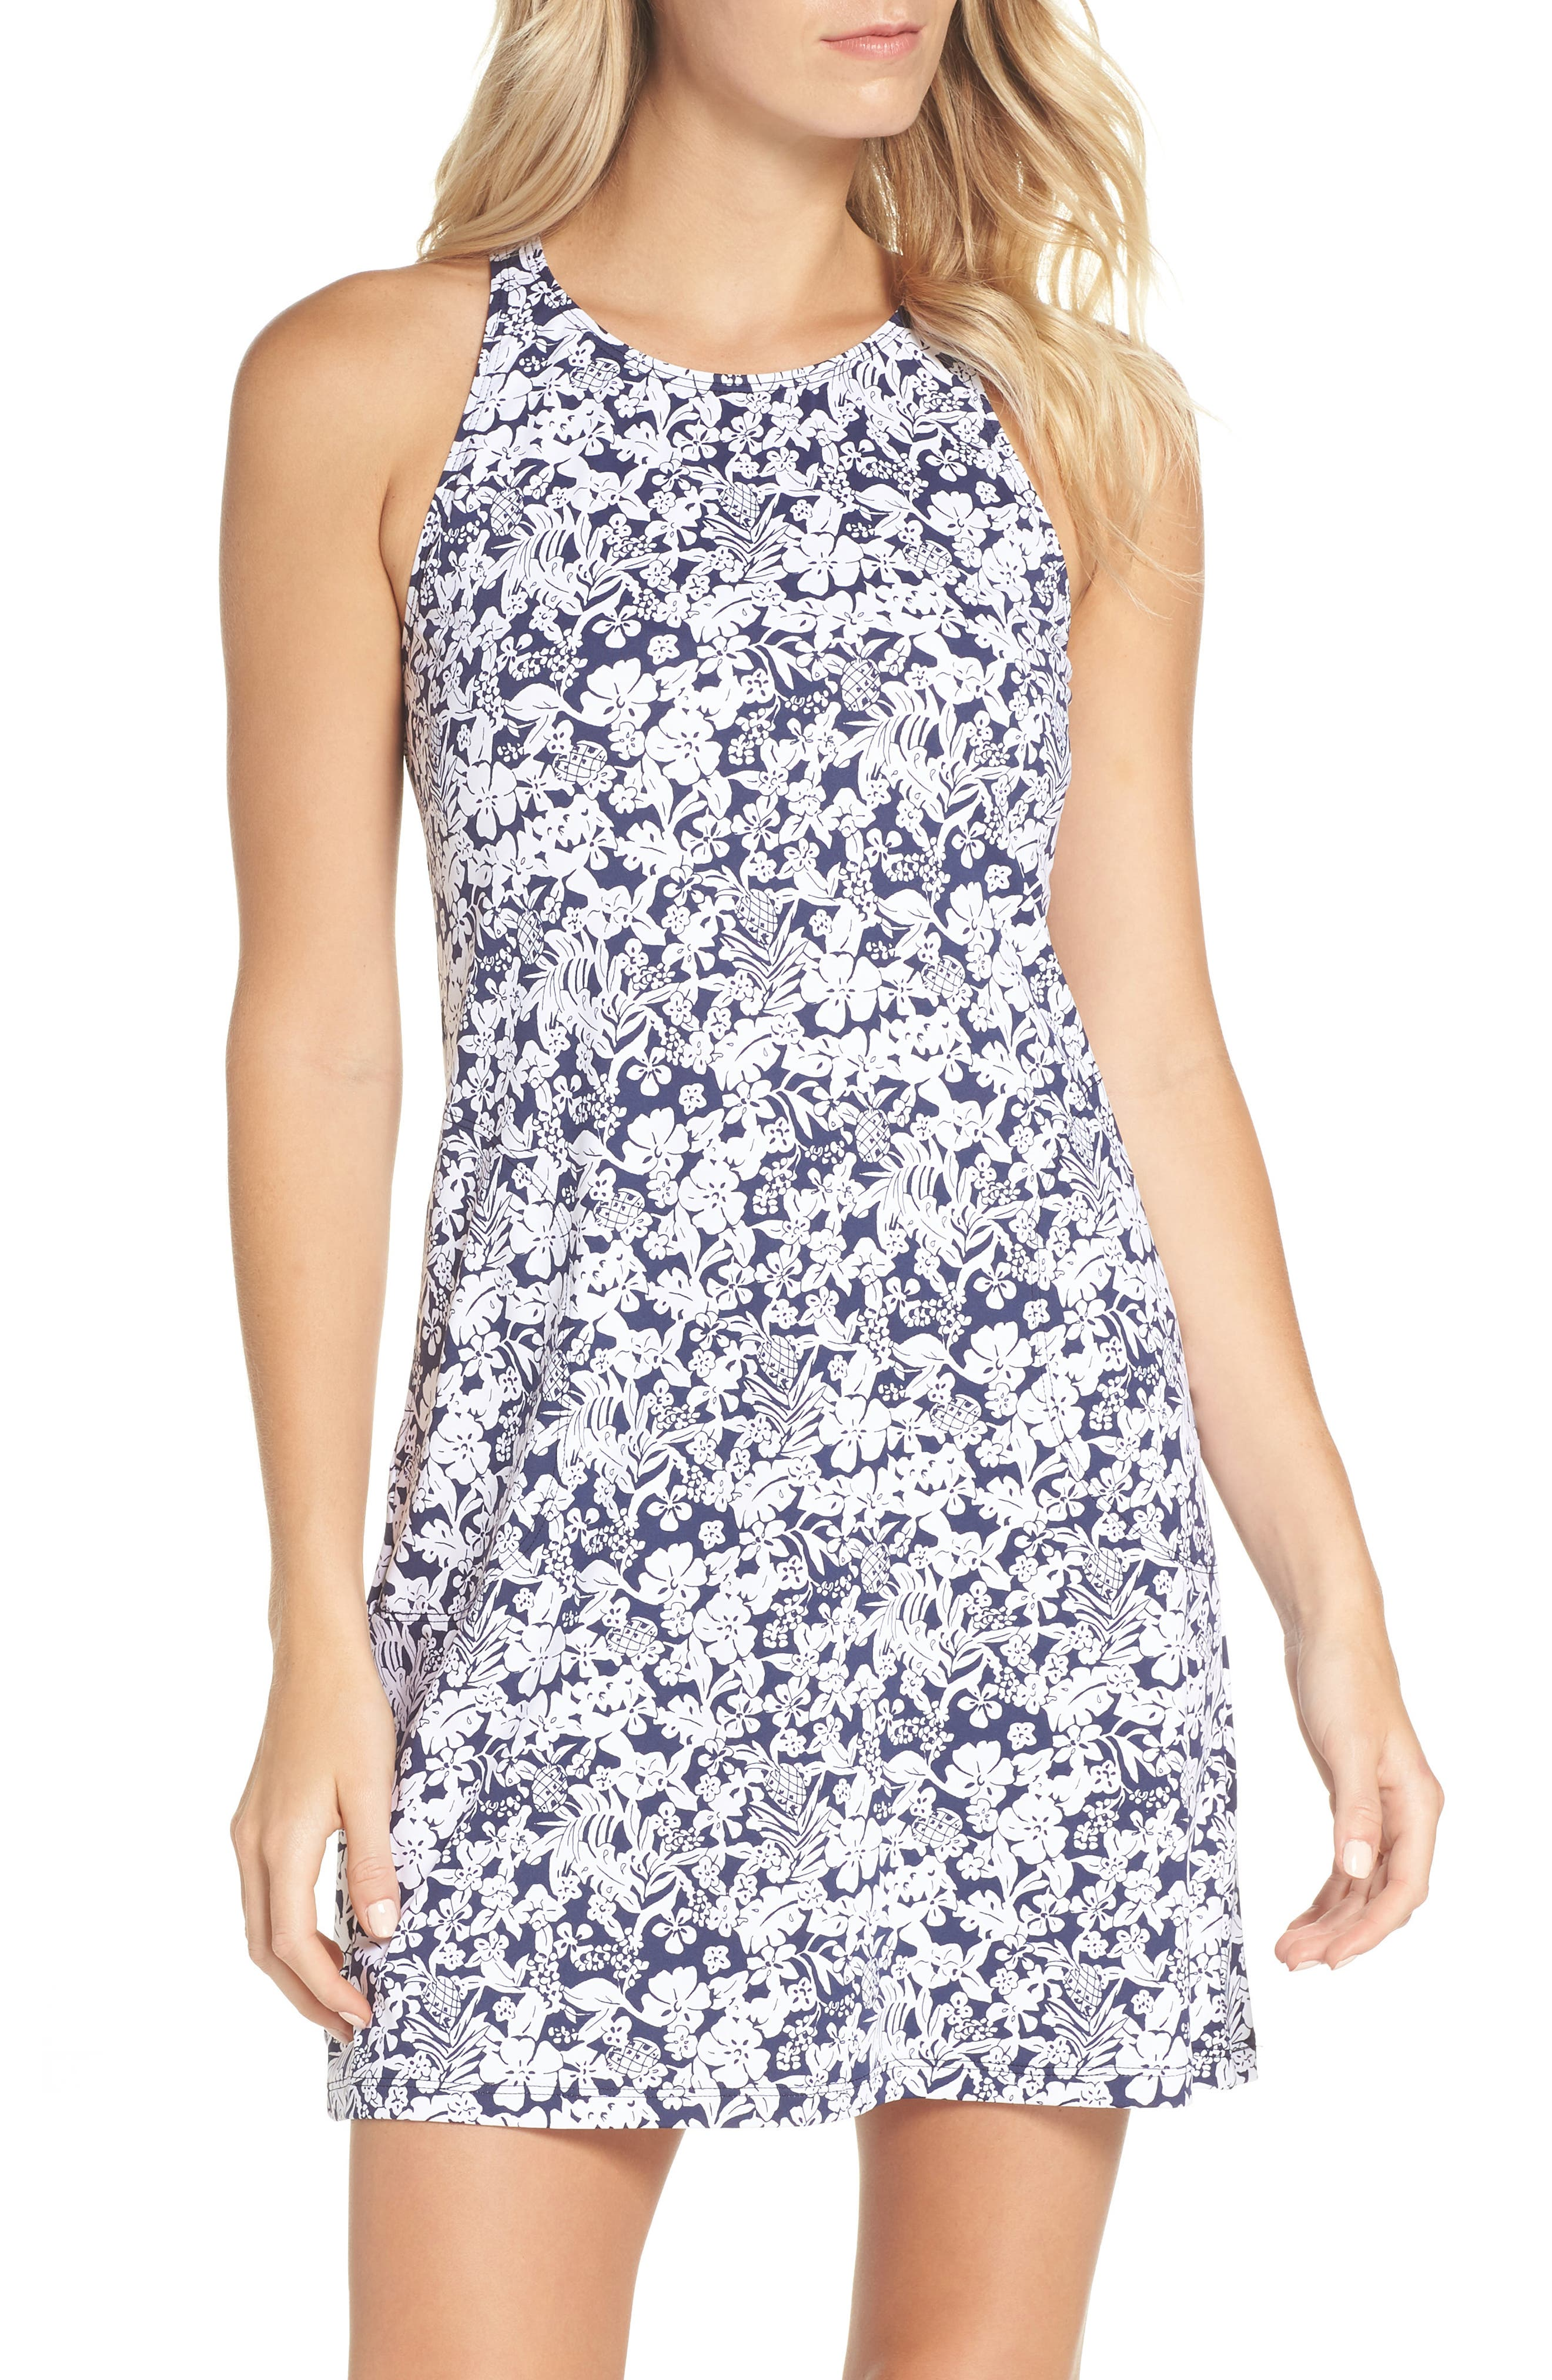 Riviera Tiles Cover-Up Dress,                             Main thumbnail 1, color,                             Mare Blue